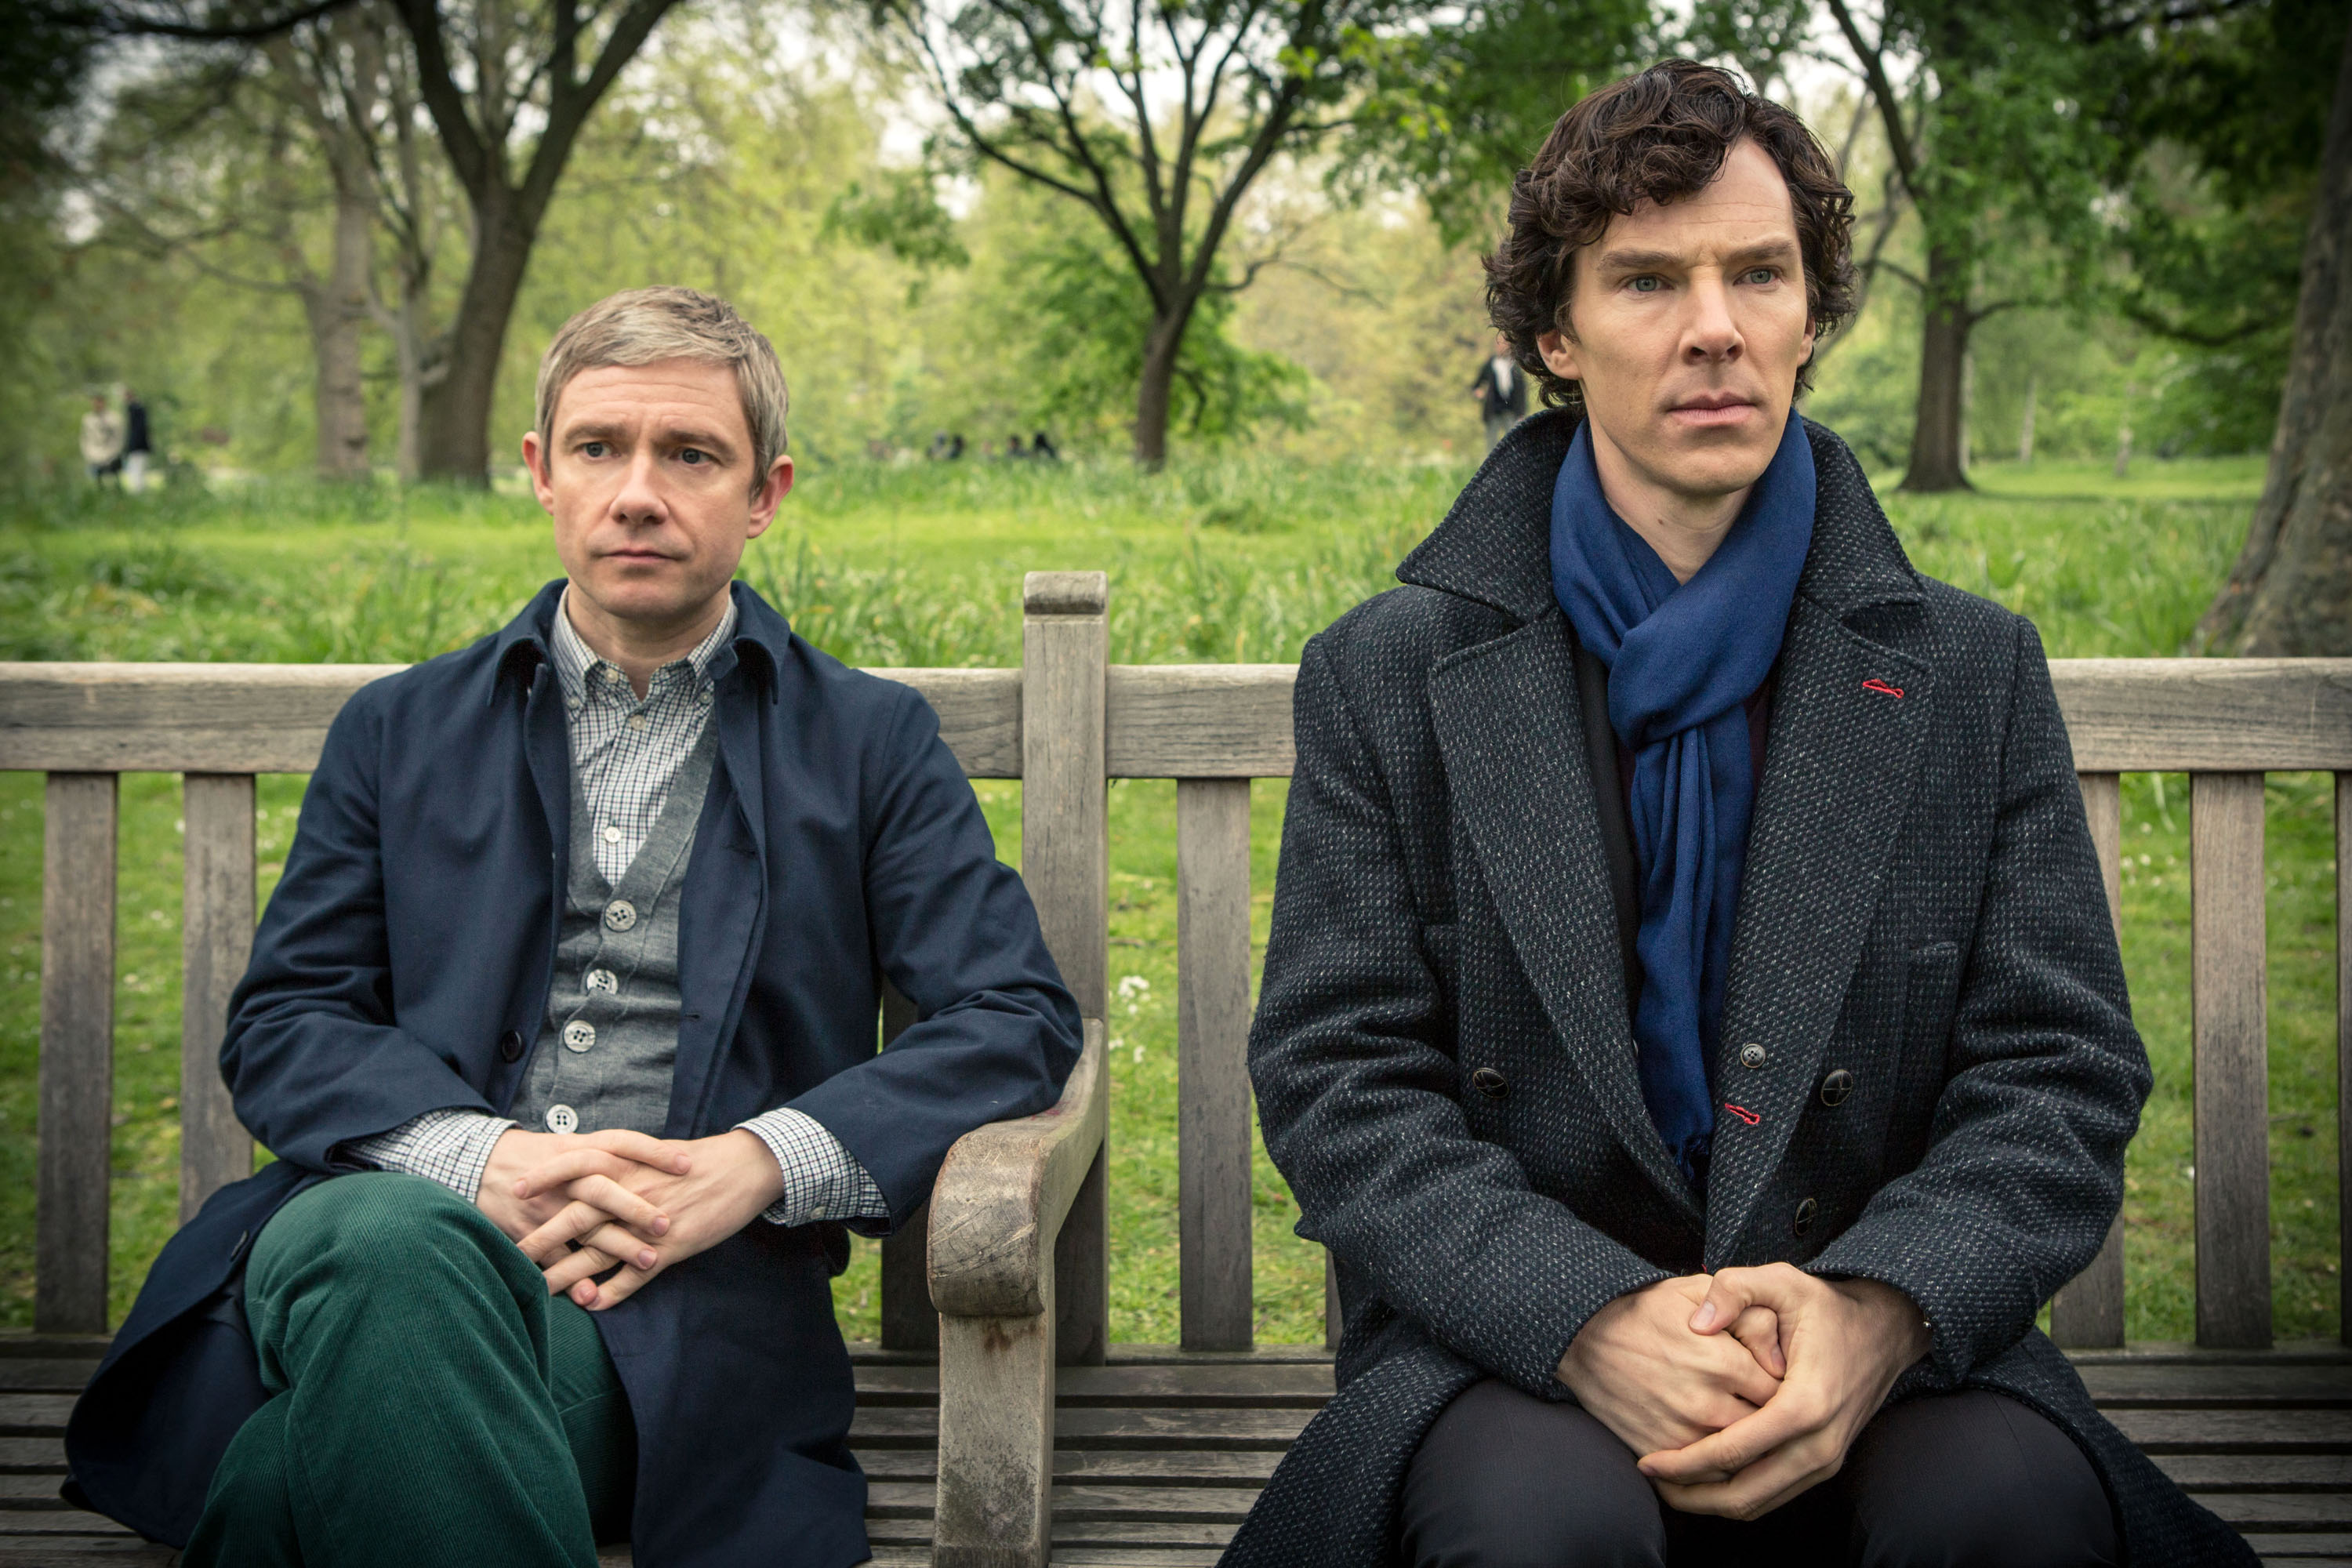 """Sherlock, Season 3 Sundays, Jan. 19 - Feb. 2 on MASTERPIECE on PBS """"The Sign of Three""""—Sunday, January 26, 2014 at 9:58 pm ET on PBS Sherlock faces his biggest challenge of all – delivering a Best Man's speech on John's wedding day! But all isn't quite as it seems. Mortal danger stalks the reception - and someone might not make it to the happy couple's first dance. Sherlock must thank the bridesmaids, solve the case and stop a killer! Shown from left to right: Martin Freeman as John Watson and Benedict Cumberbatch as Sherlock Holmes (C)Robert Viglasky/Hartswood Films for MASTERPIECE This image may be used only in the direct promotion of MASTERPIECE. No other rights are granted. All rights are reserved. Editorial use only."""